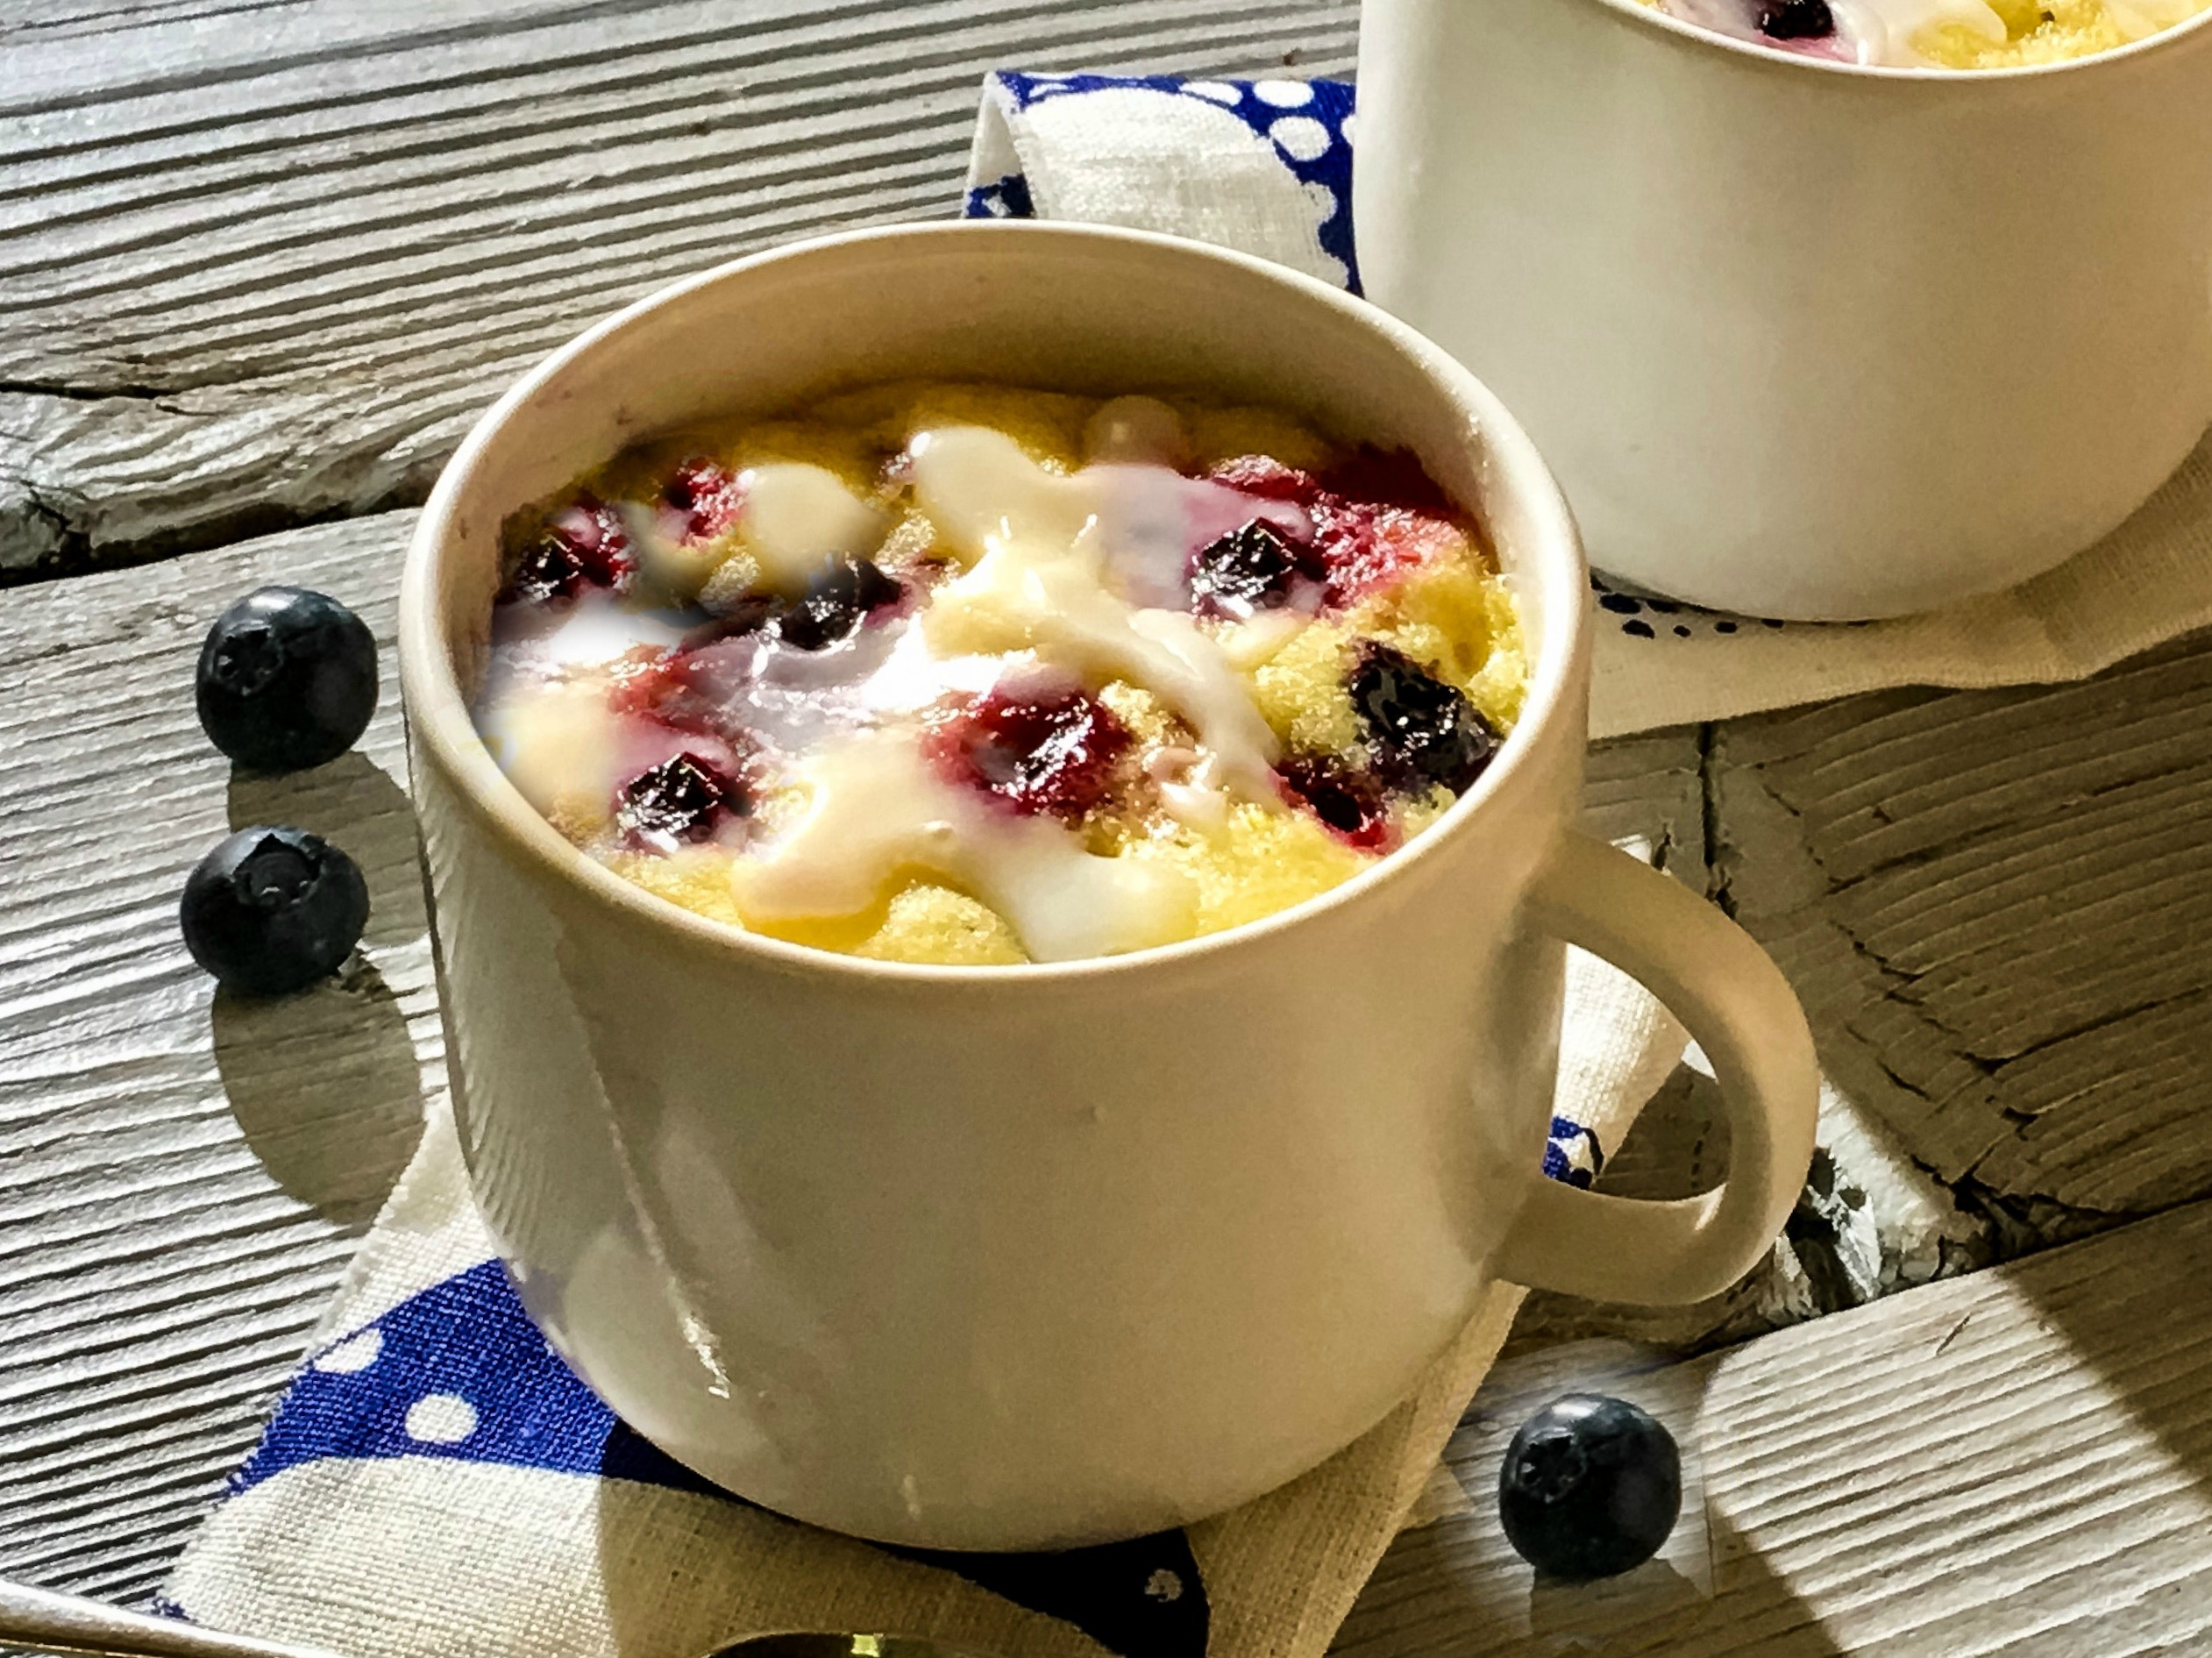 close up of a mug cake with blueberries